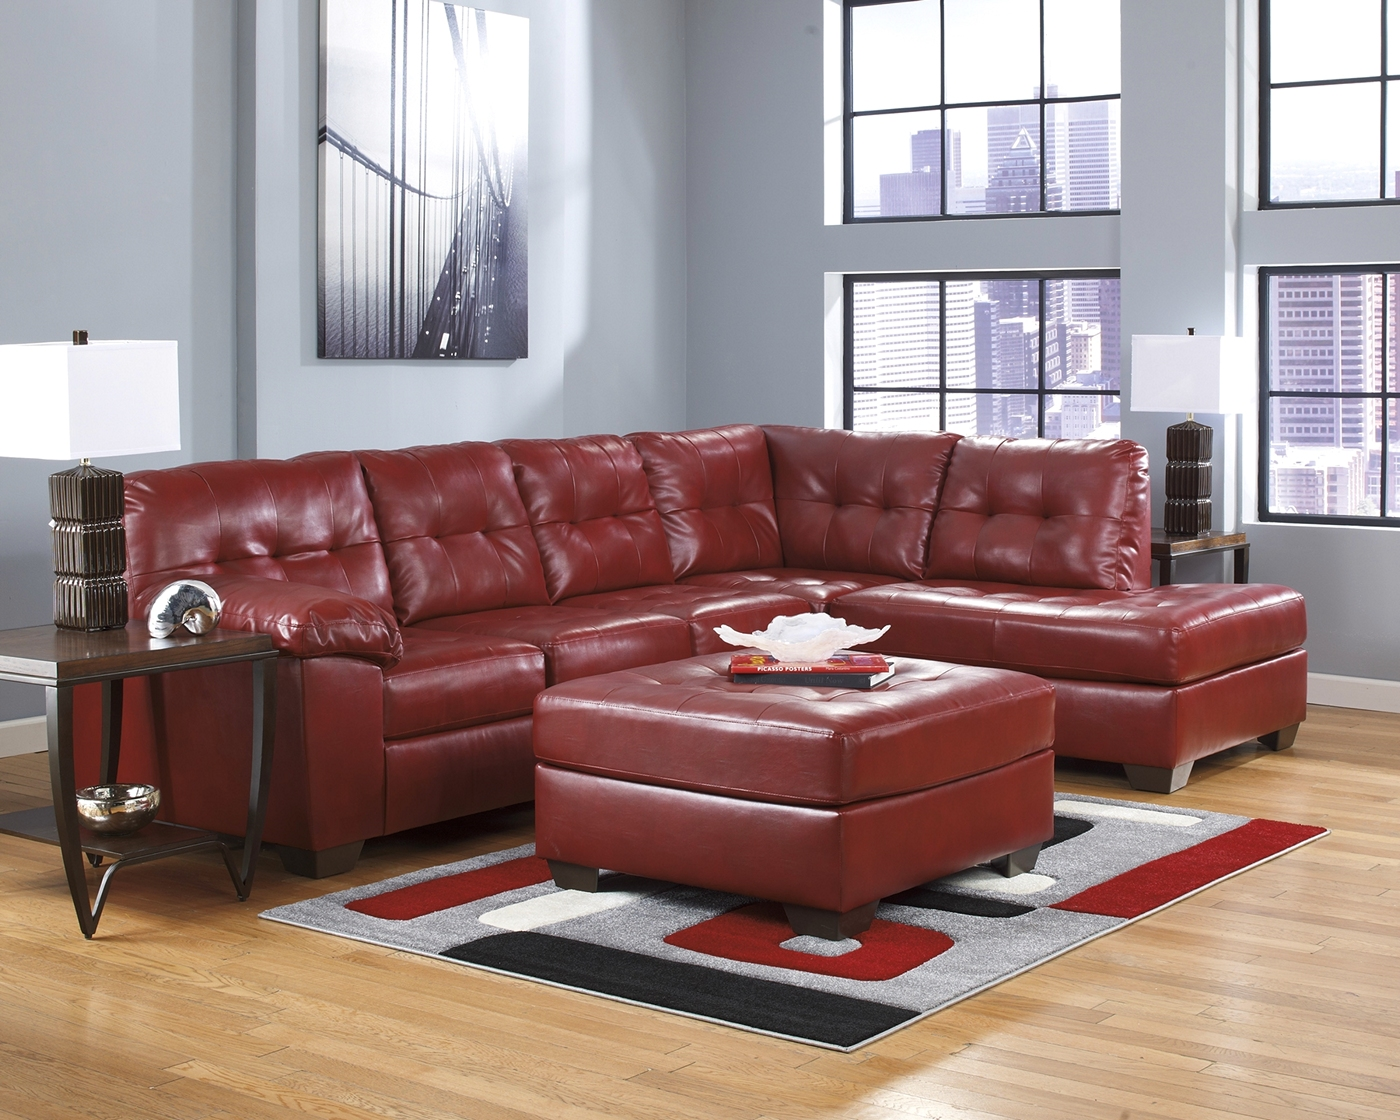 Soho Contemporary Red Bonded Leather Sectional Sofa W Right Chaise